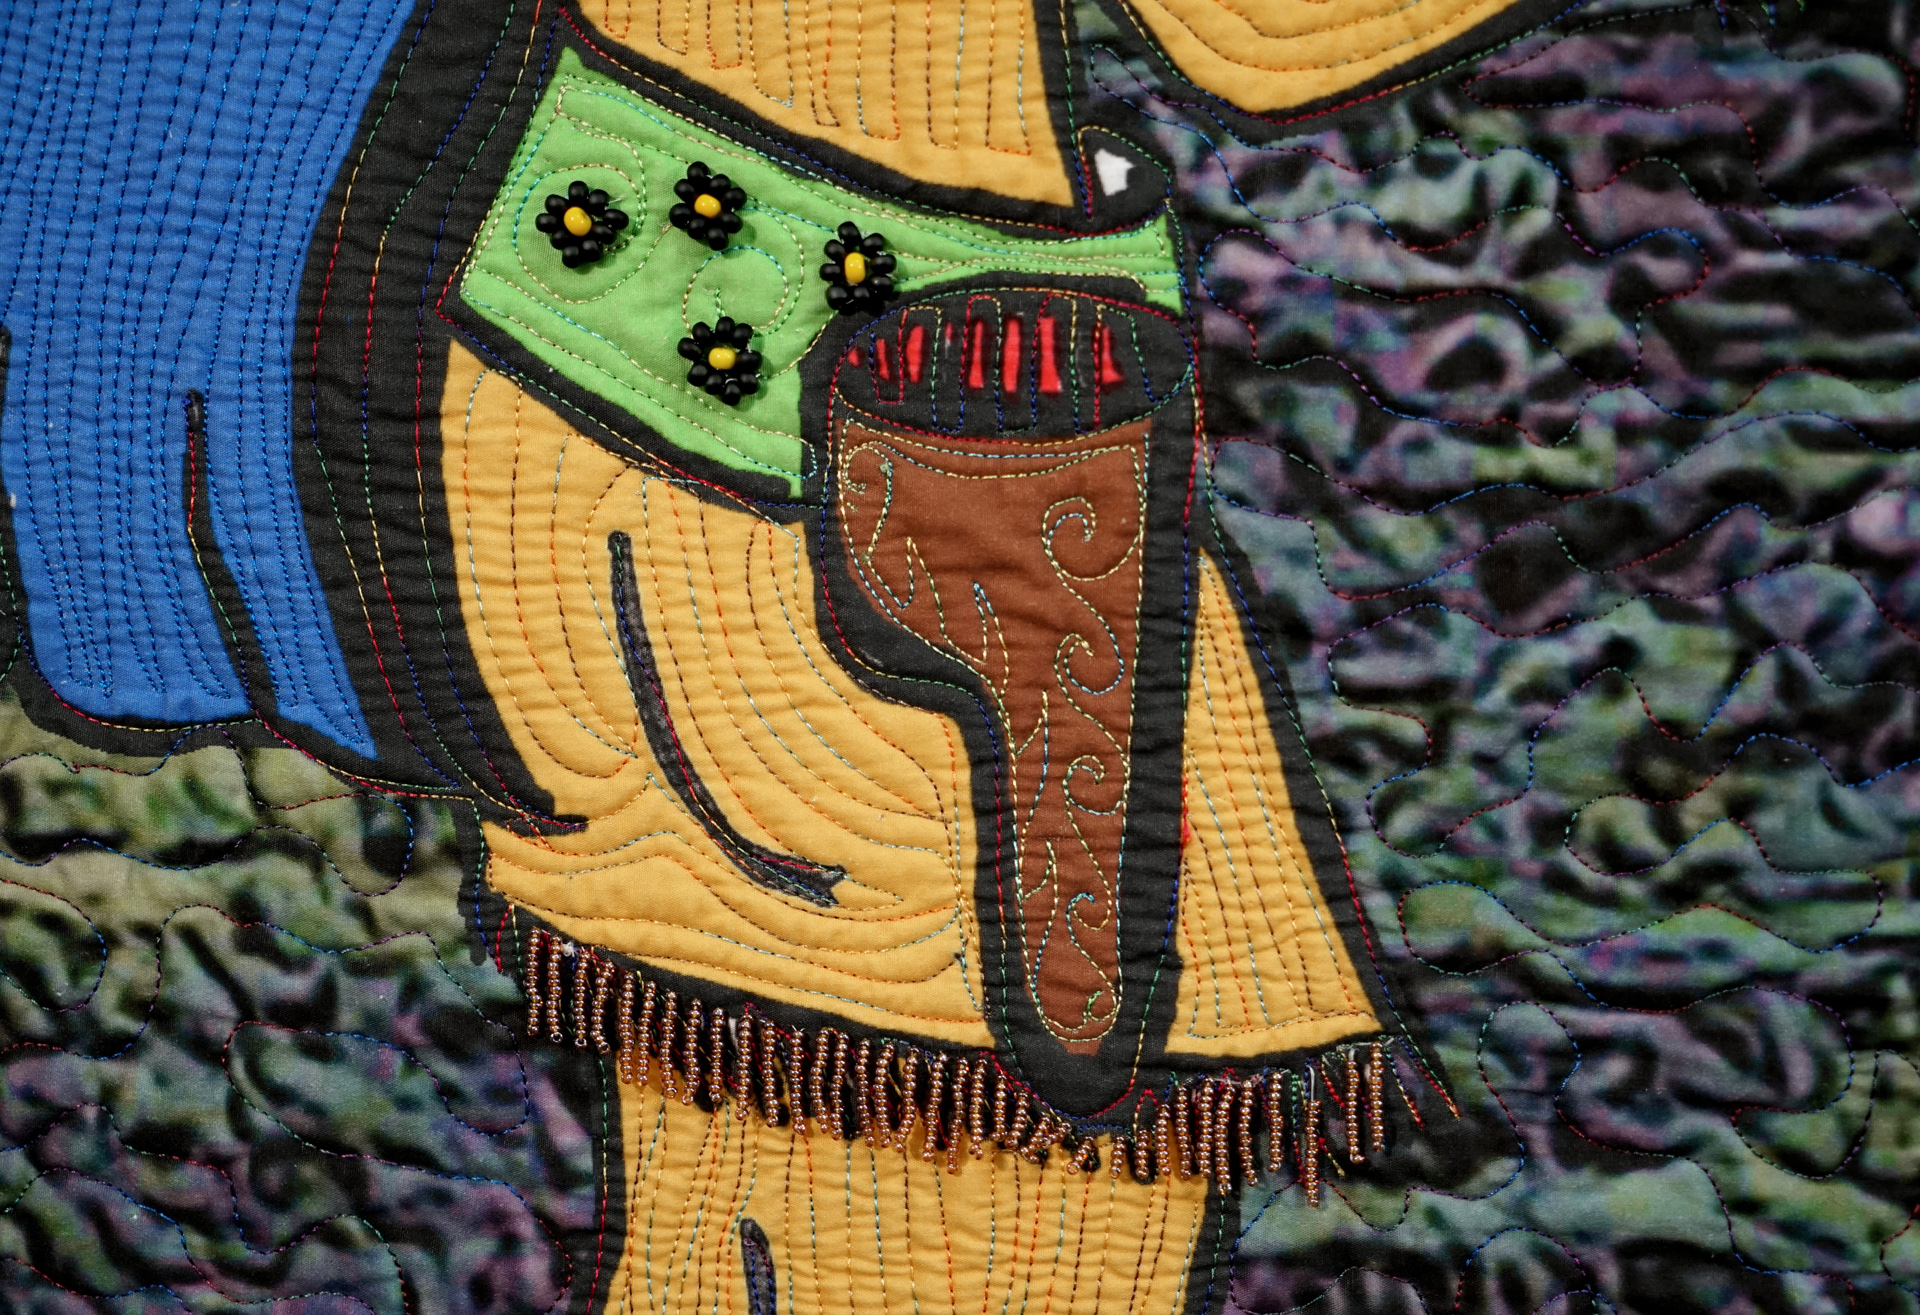 Cowgirl and Alien_detail 1 (website)